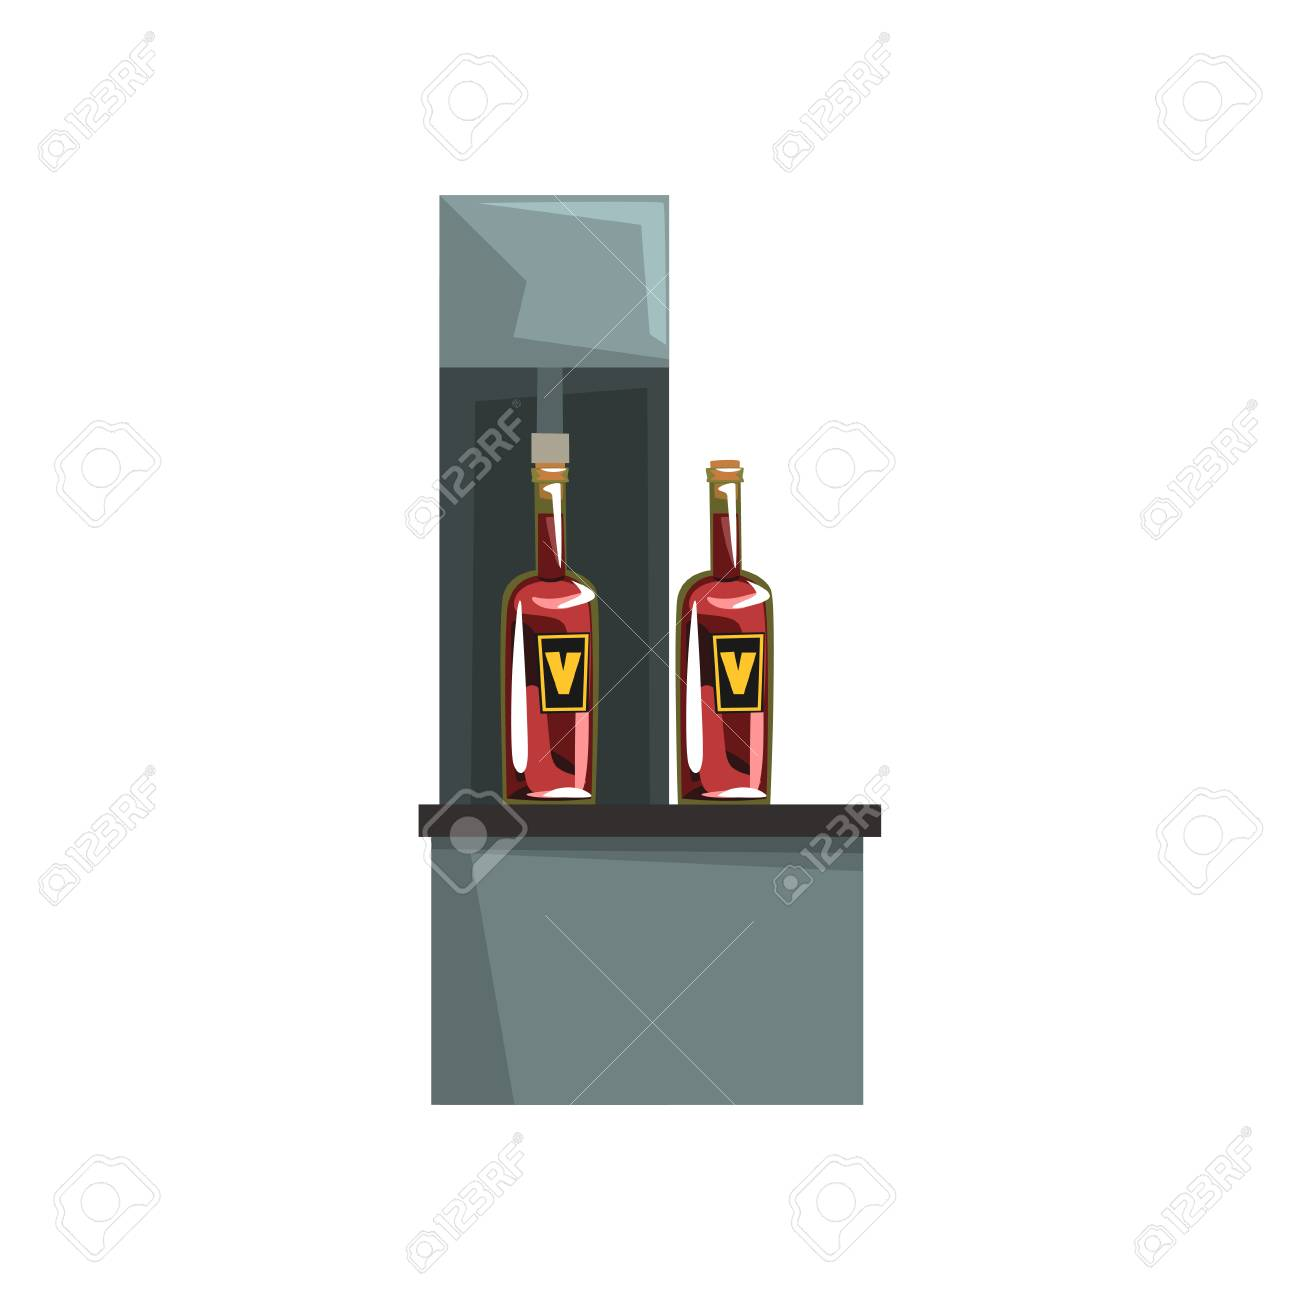 Pouring wine and corking wine bottles, wine production process vector Illustration on a white background - 102522875